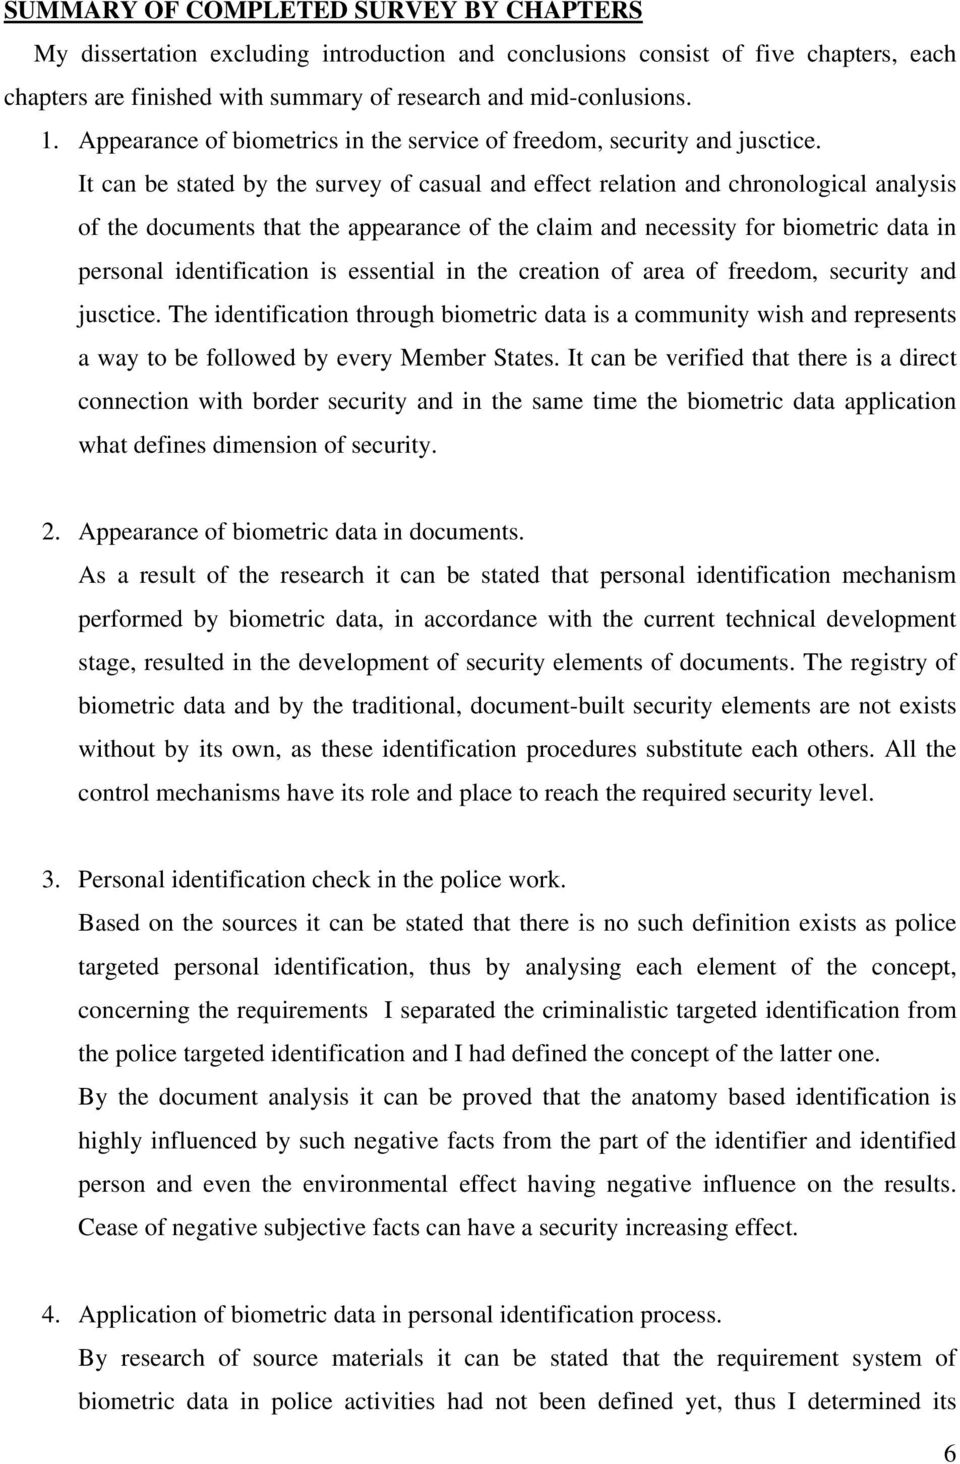 It can be stated by the survey of casual and effect relation and chronological analysis of the documents that the appearance of the claim and necessity for biometric data in personal identification